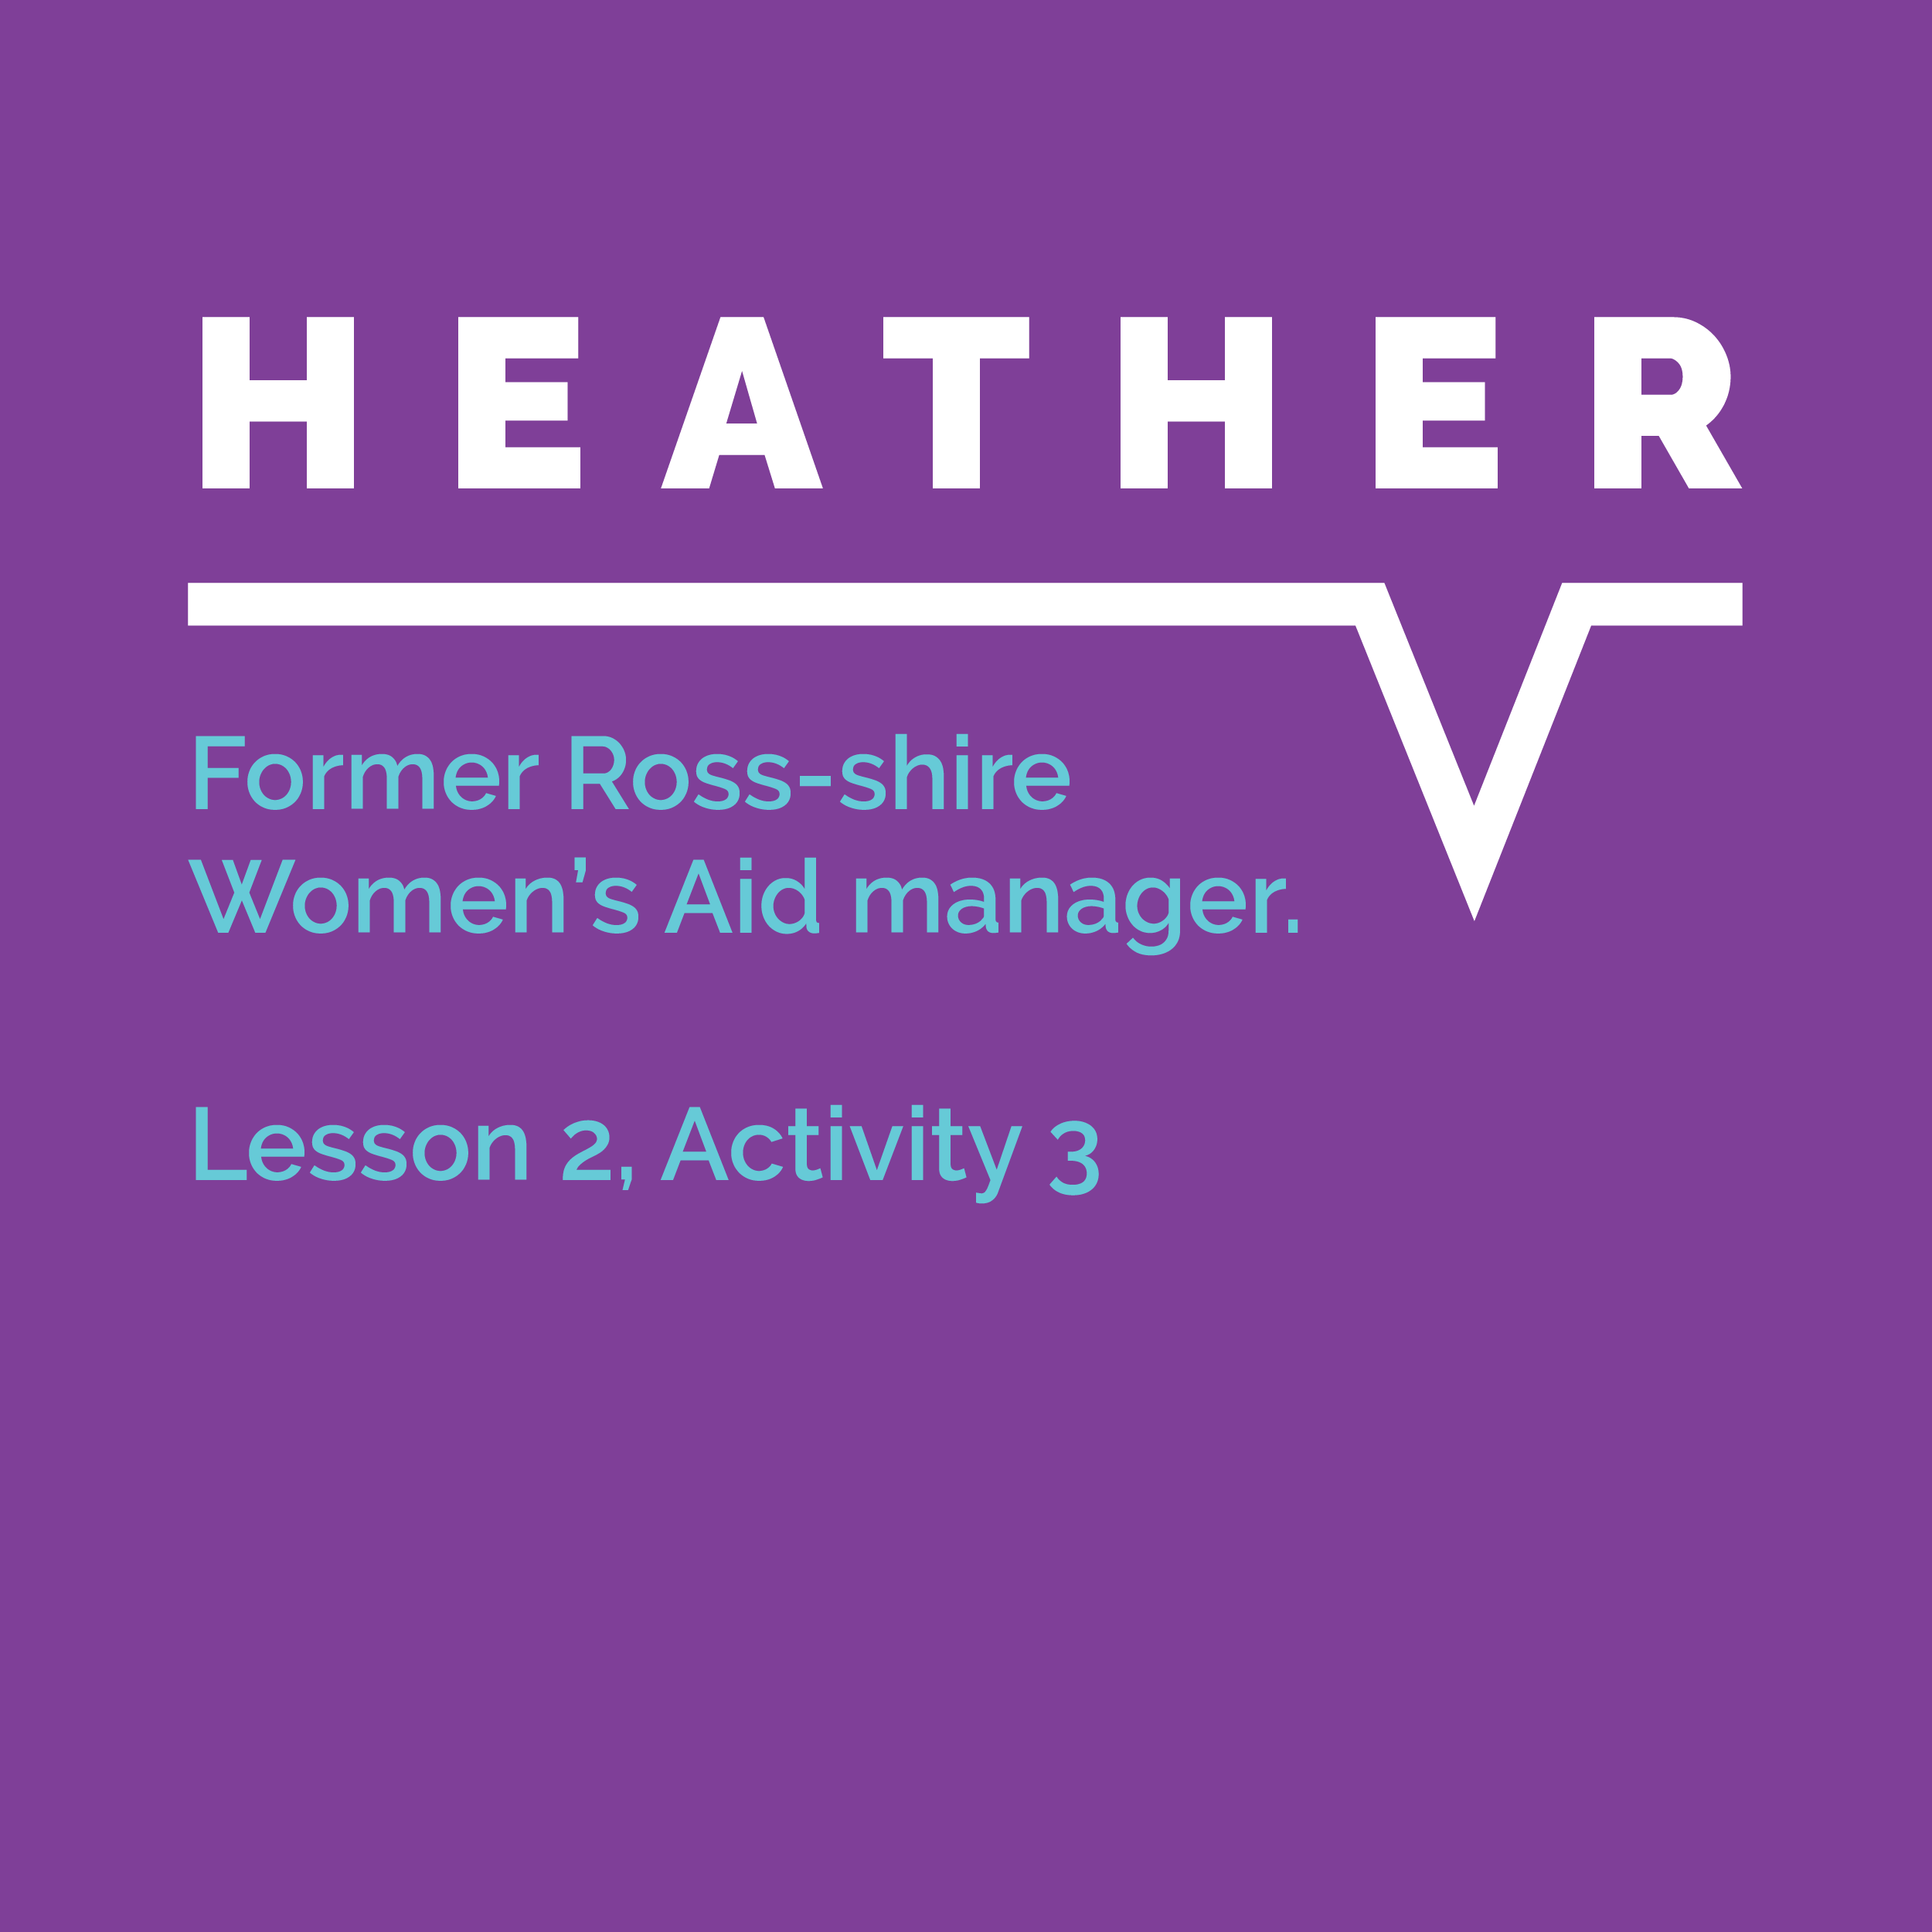 Speaking Out Learning Resource: Lesson 2, Activity 3: Heather, former Ross-shire Women's Aid manager